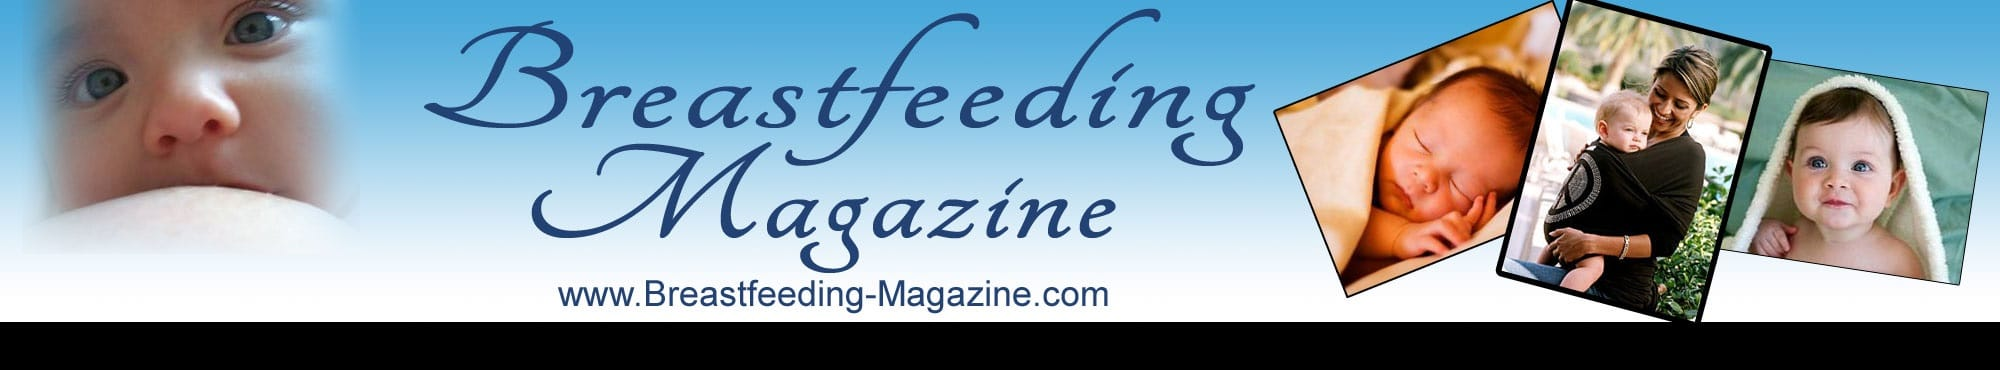 Breastfeeding Magazine